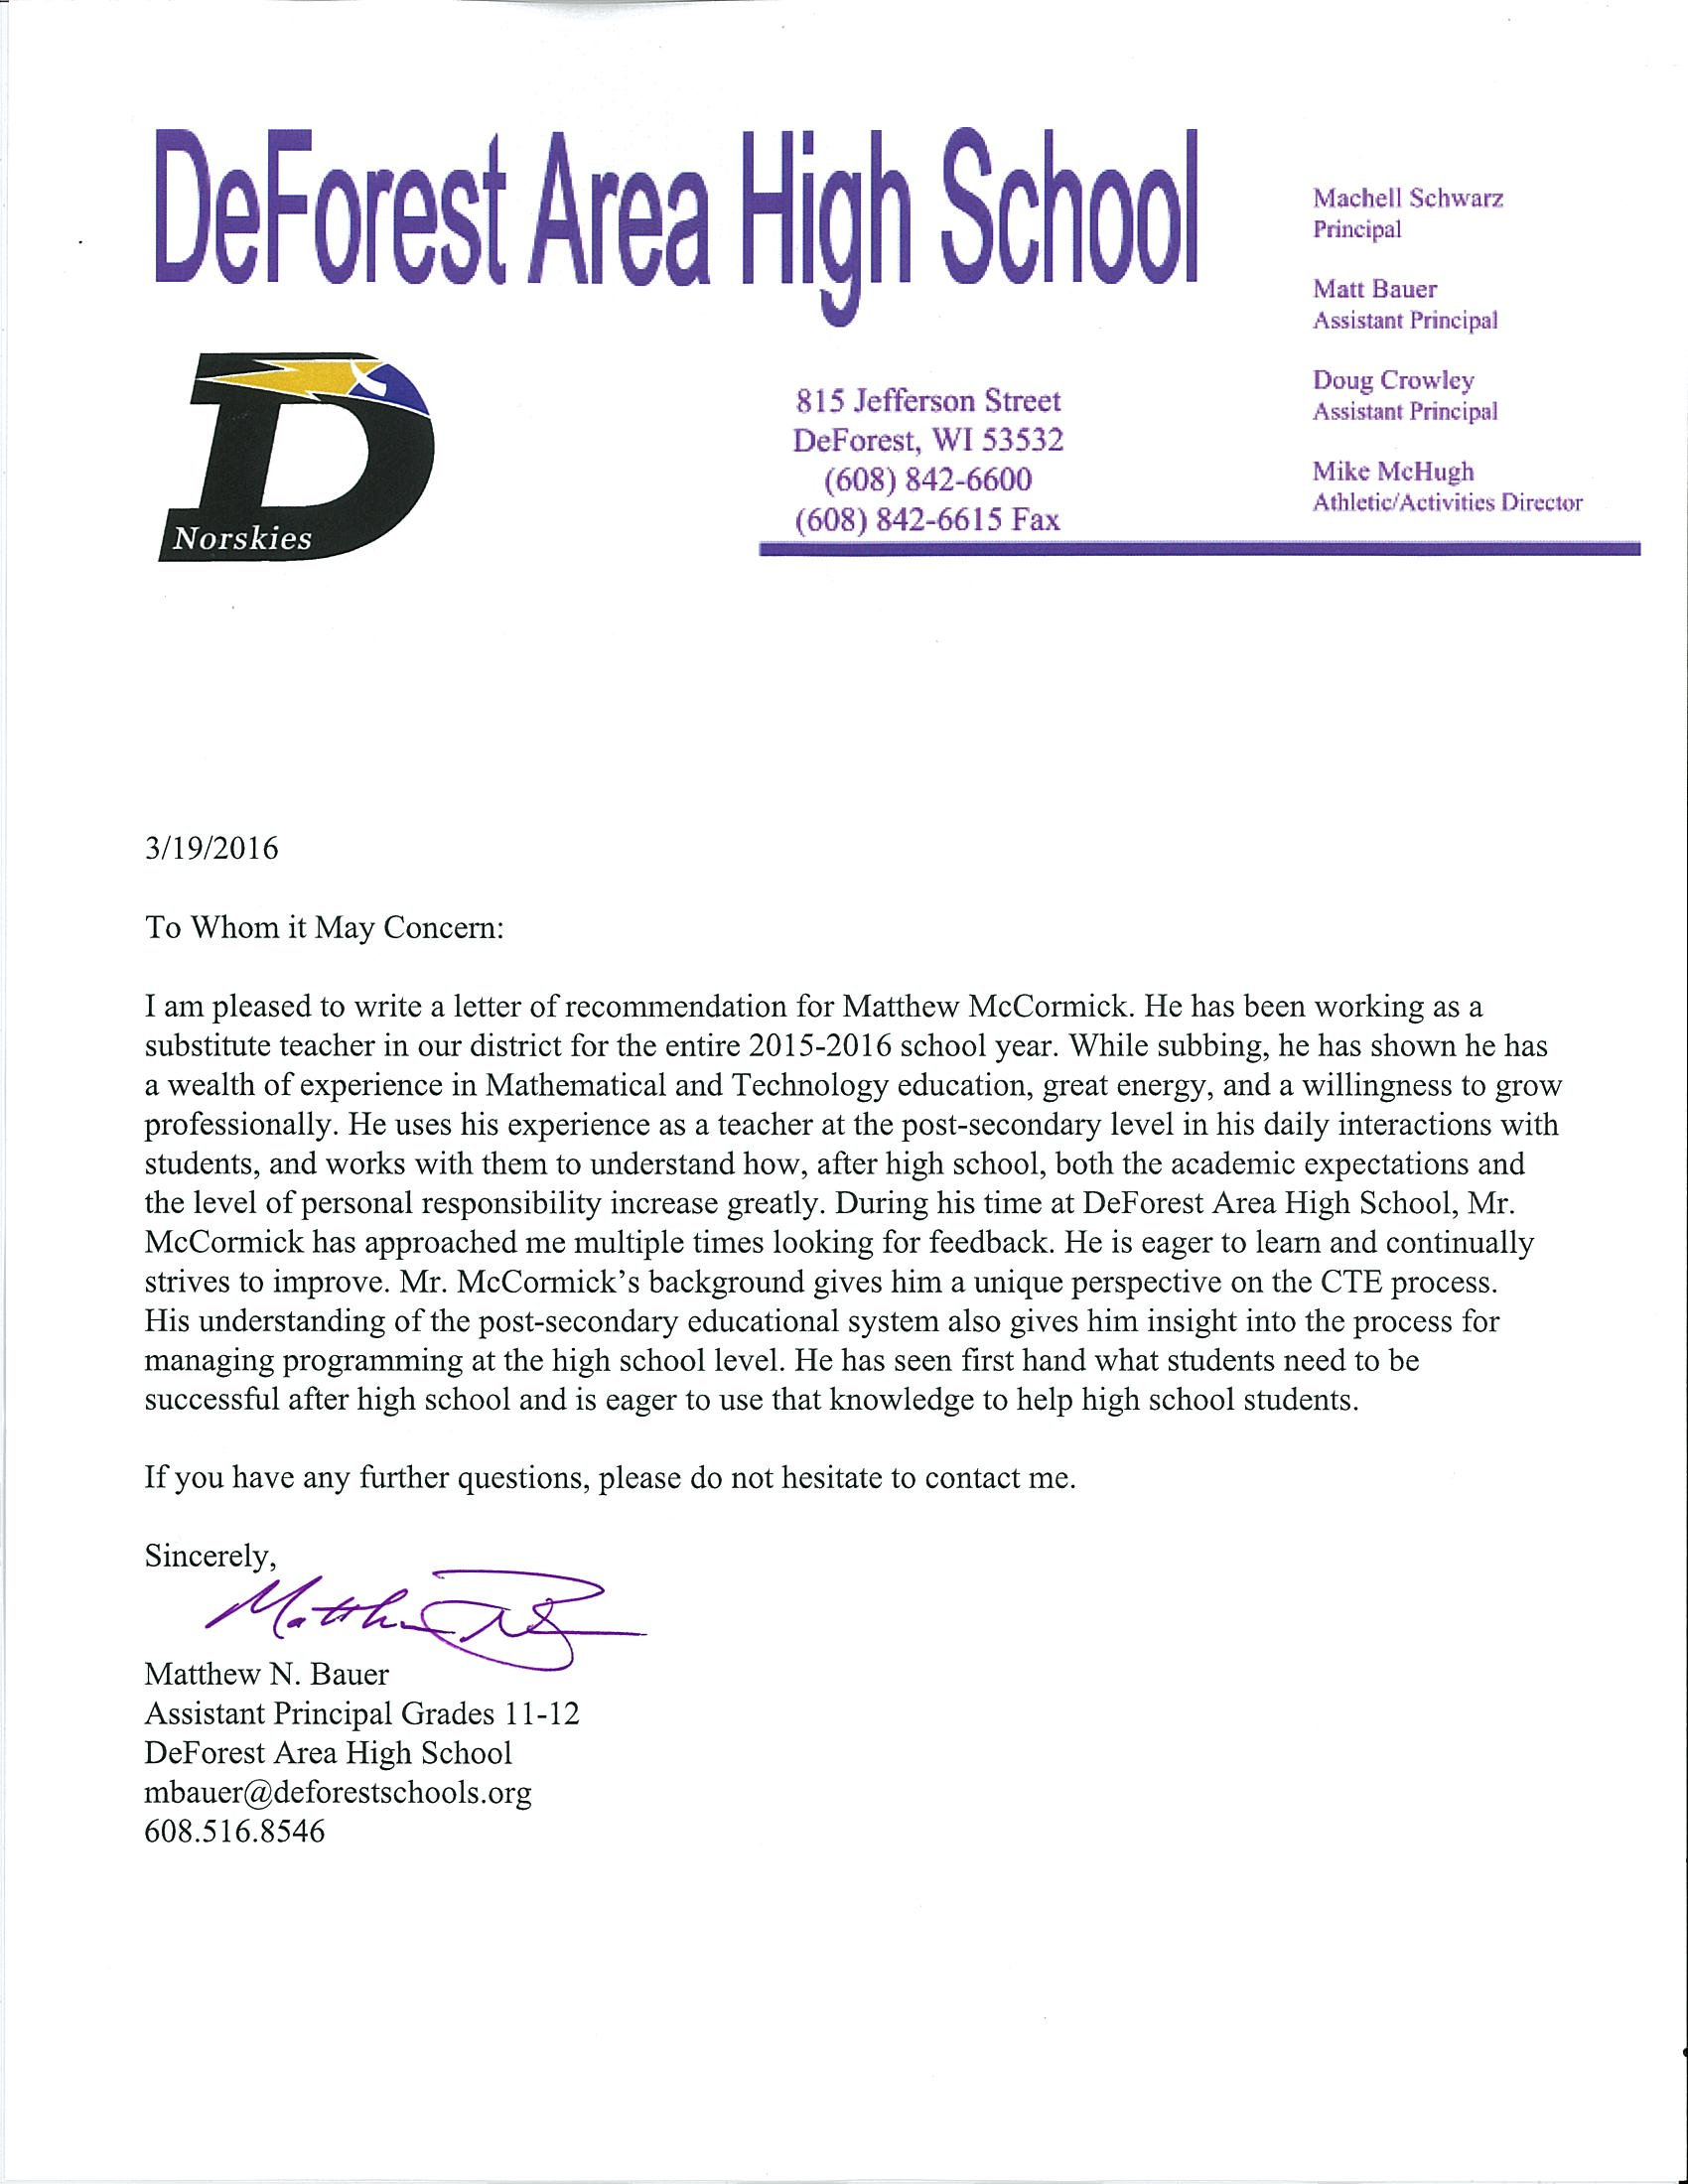 letter of recommendation for an assistant principal   Hadi.palmex.co